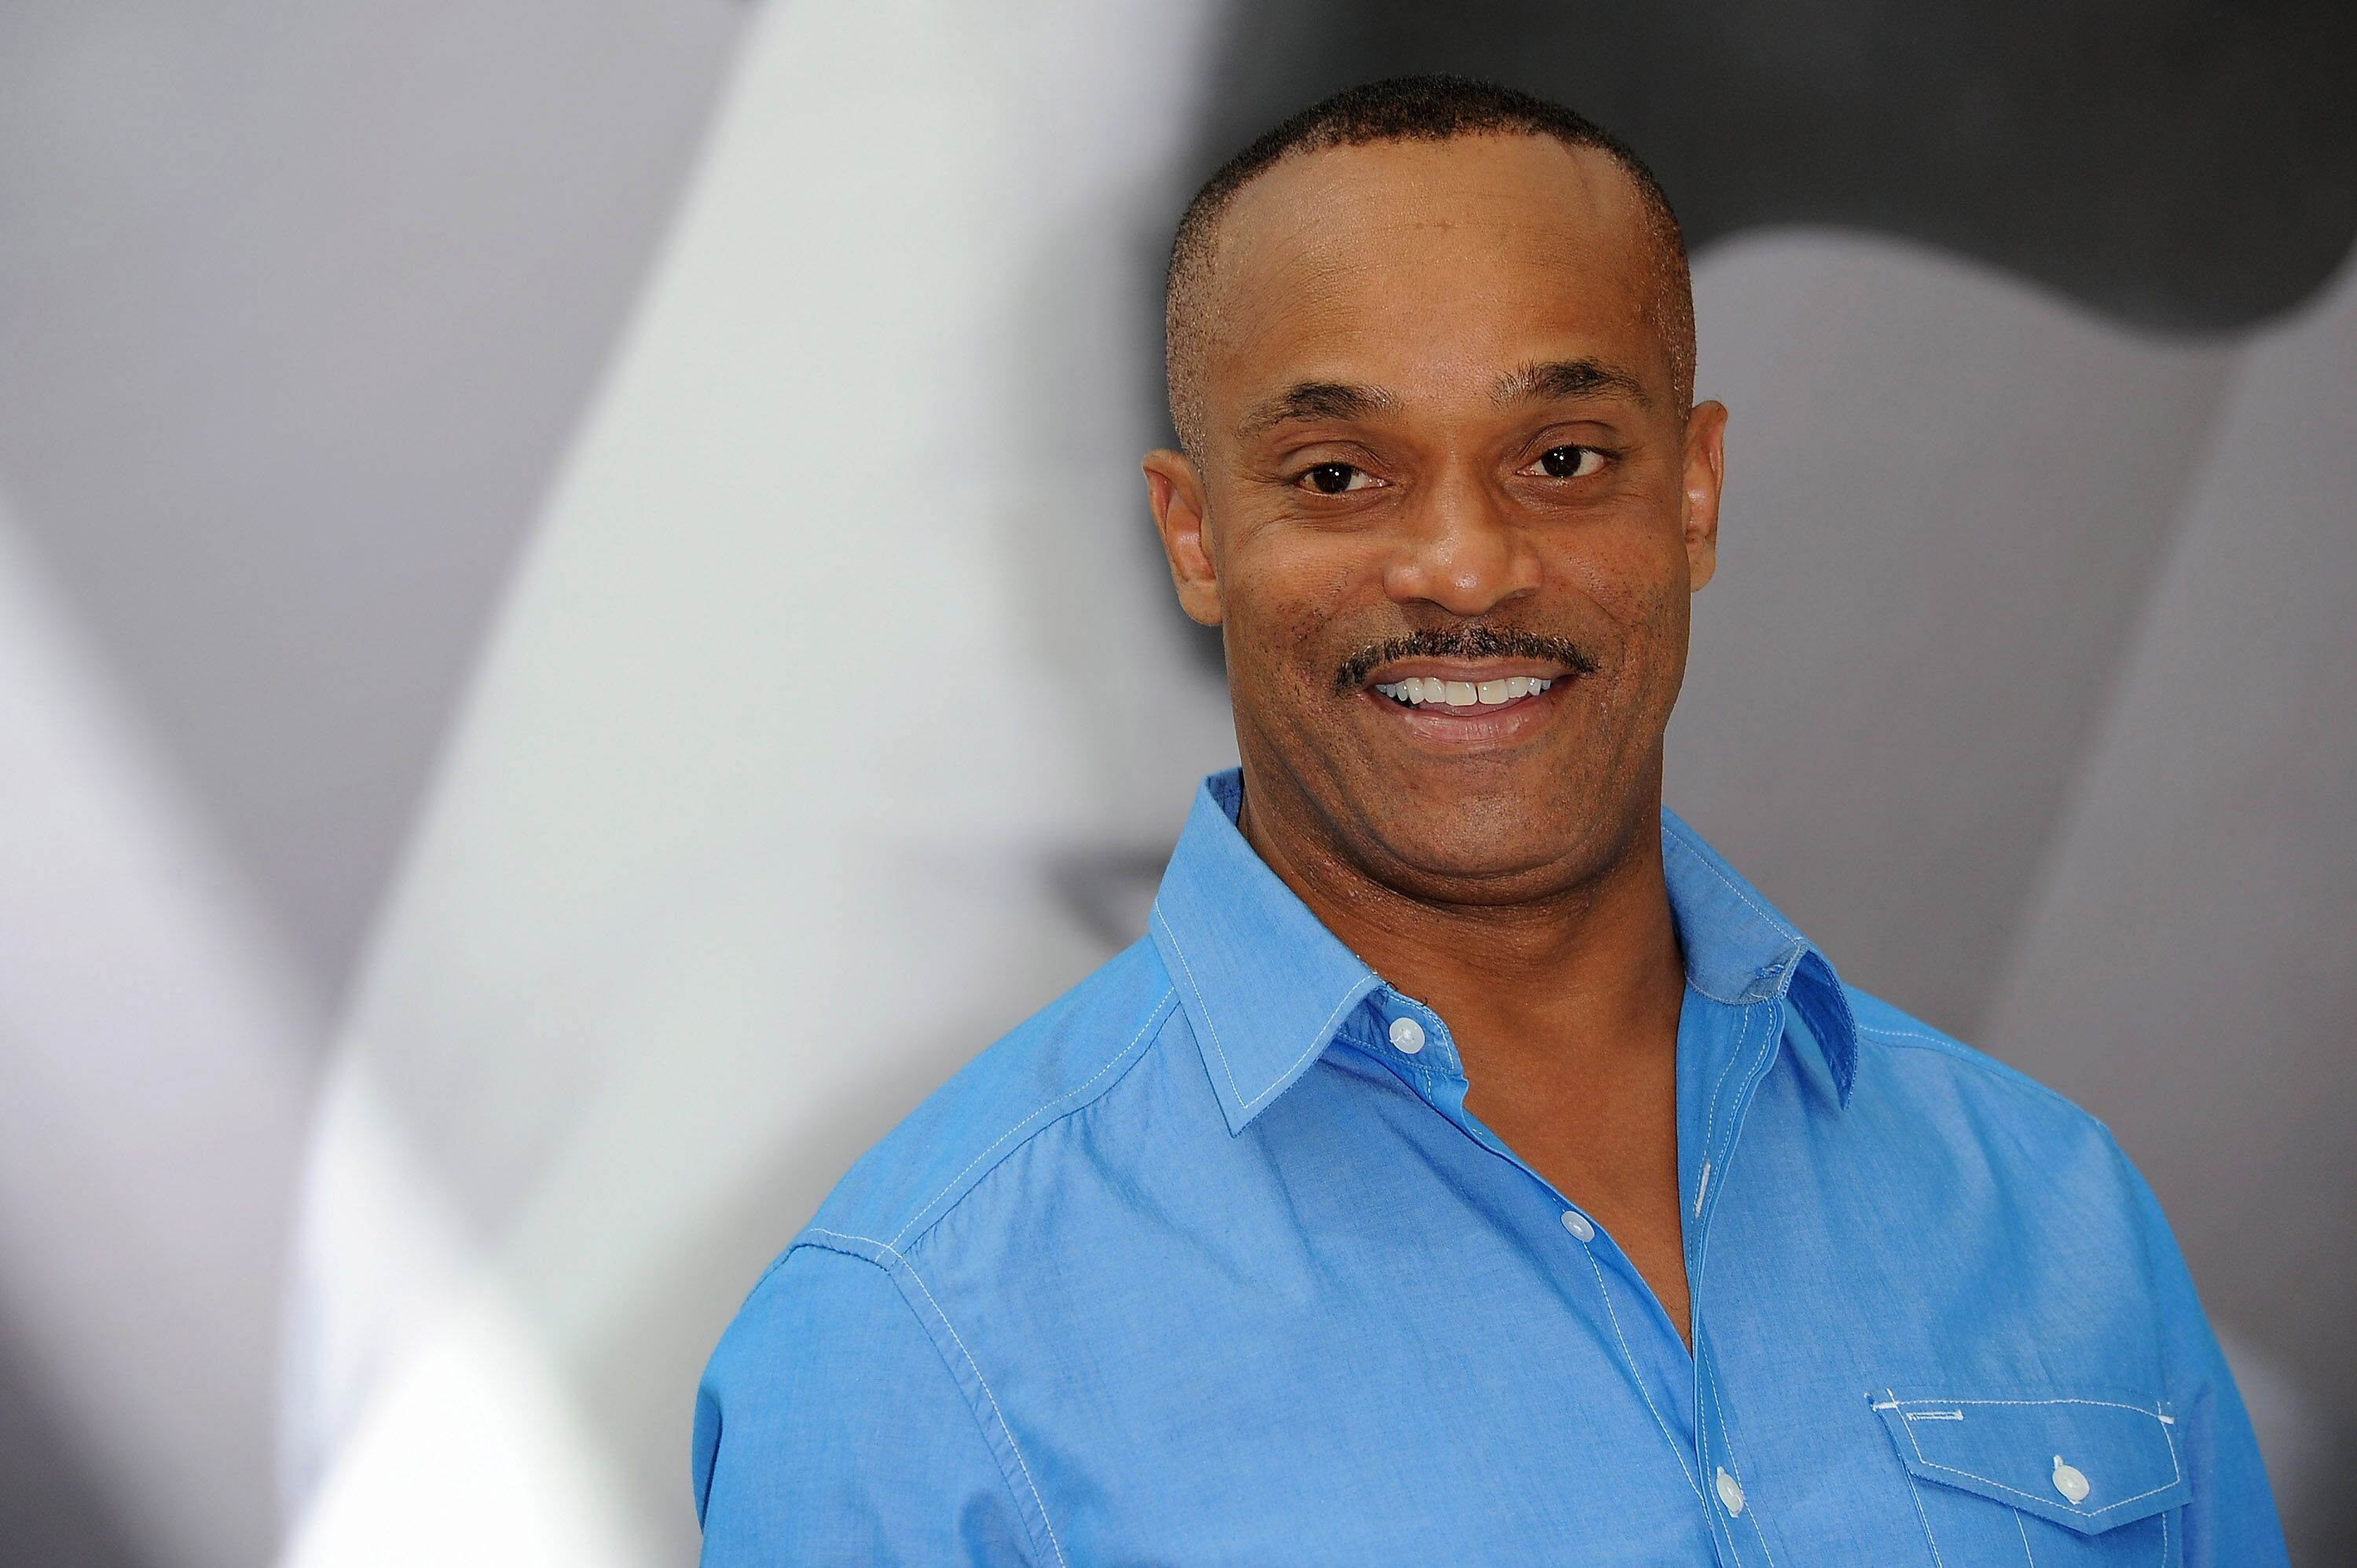 Actor Rocky Carroll attends a photocall for the TV Series 'NCIS: Naval Criminal Investigative Service' during the 52nd Monte Carlo TV Festival on June 12, 2012 in Monte-Carlo, Monaco | Photo: Getty Images